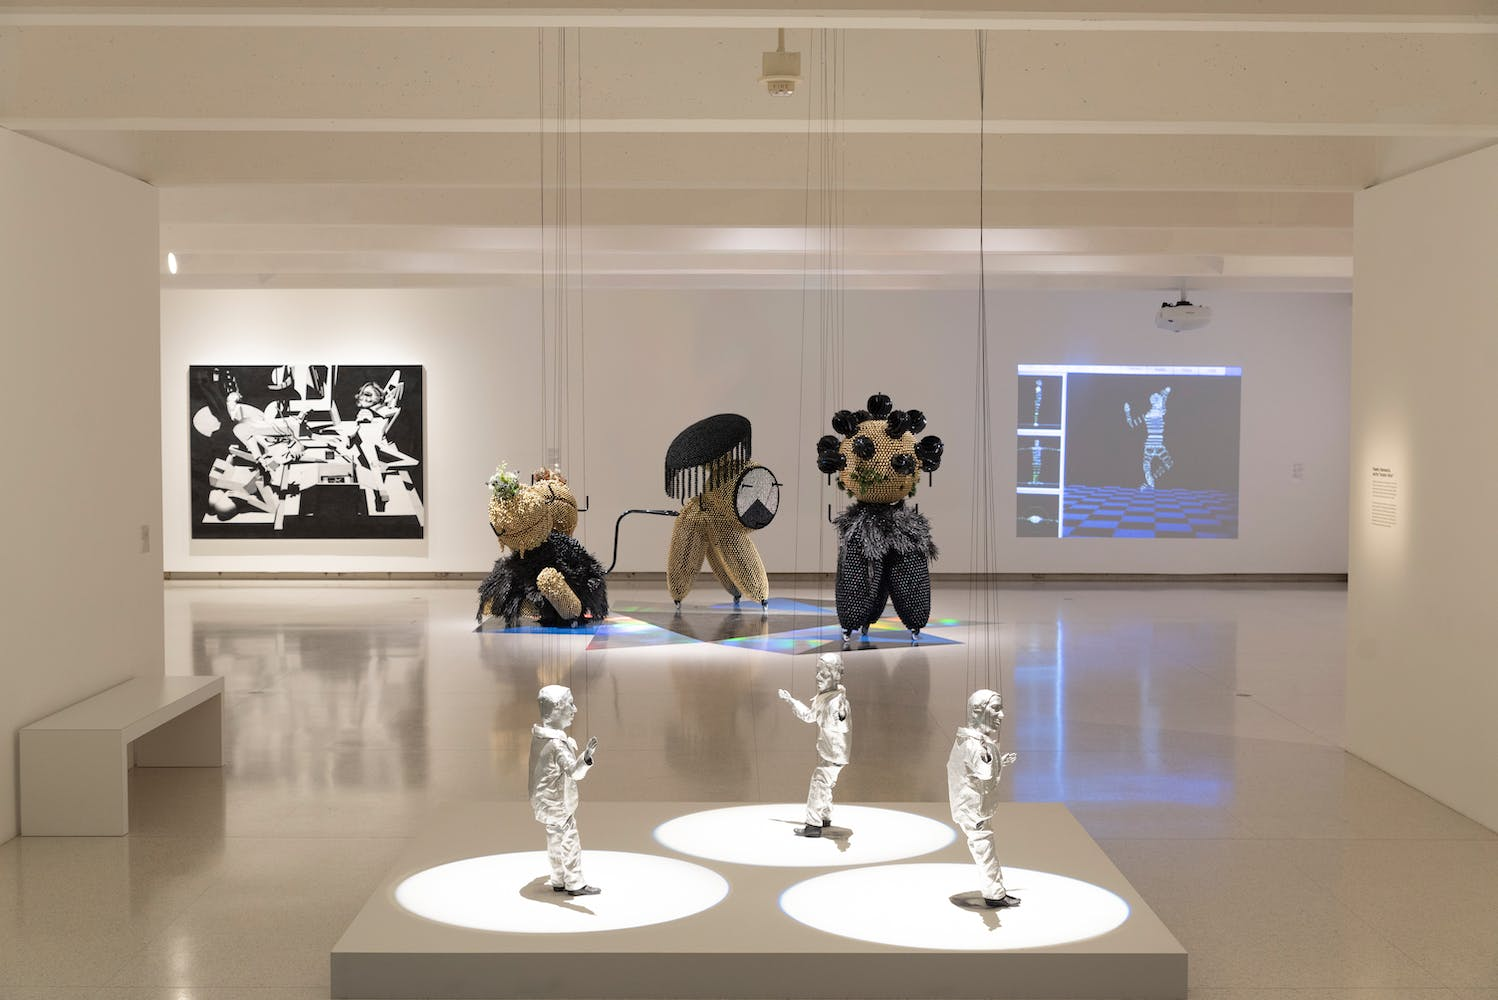 Gallery view with various sculpture objects and projections and paintings